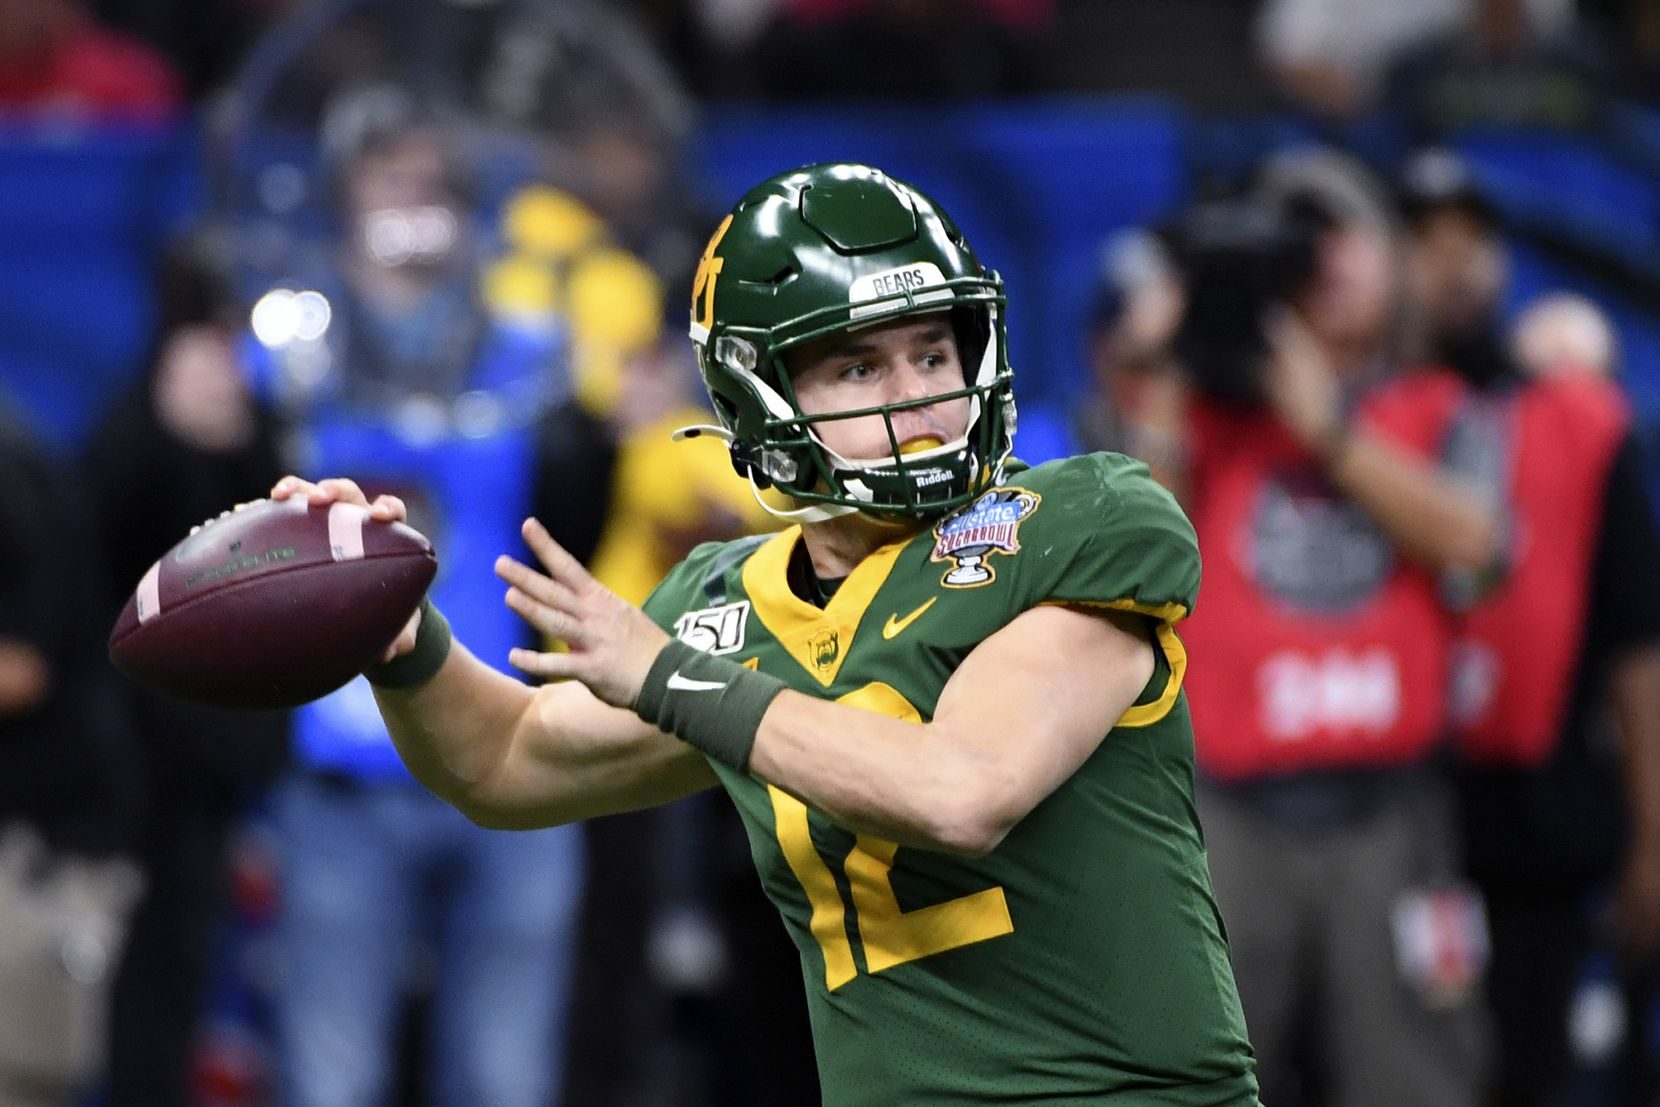 Baylor quarterback Charlie Brewer (12) passes in the first half of the Sugar Bowl NCAA college football game in New Orleans, Wednesday, Jan. 1, 2020.